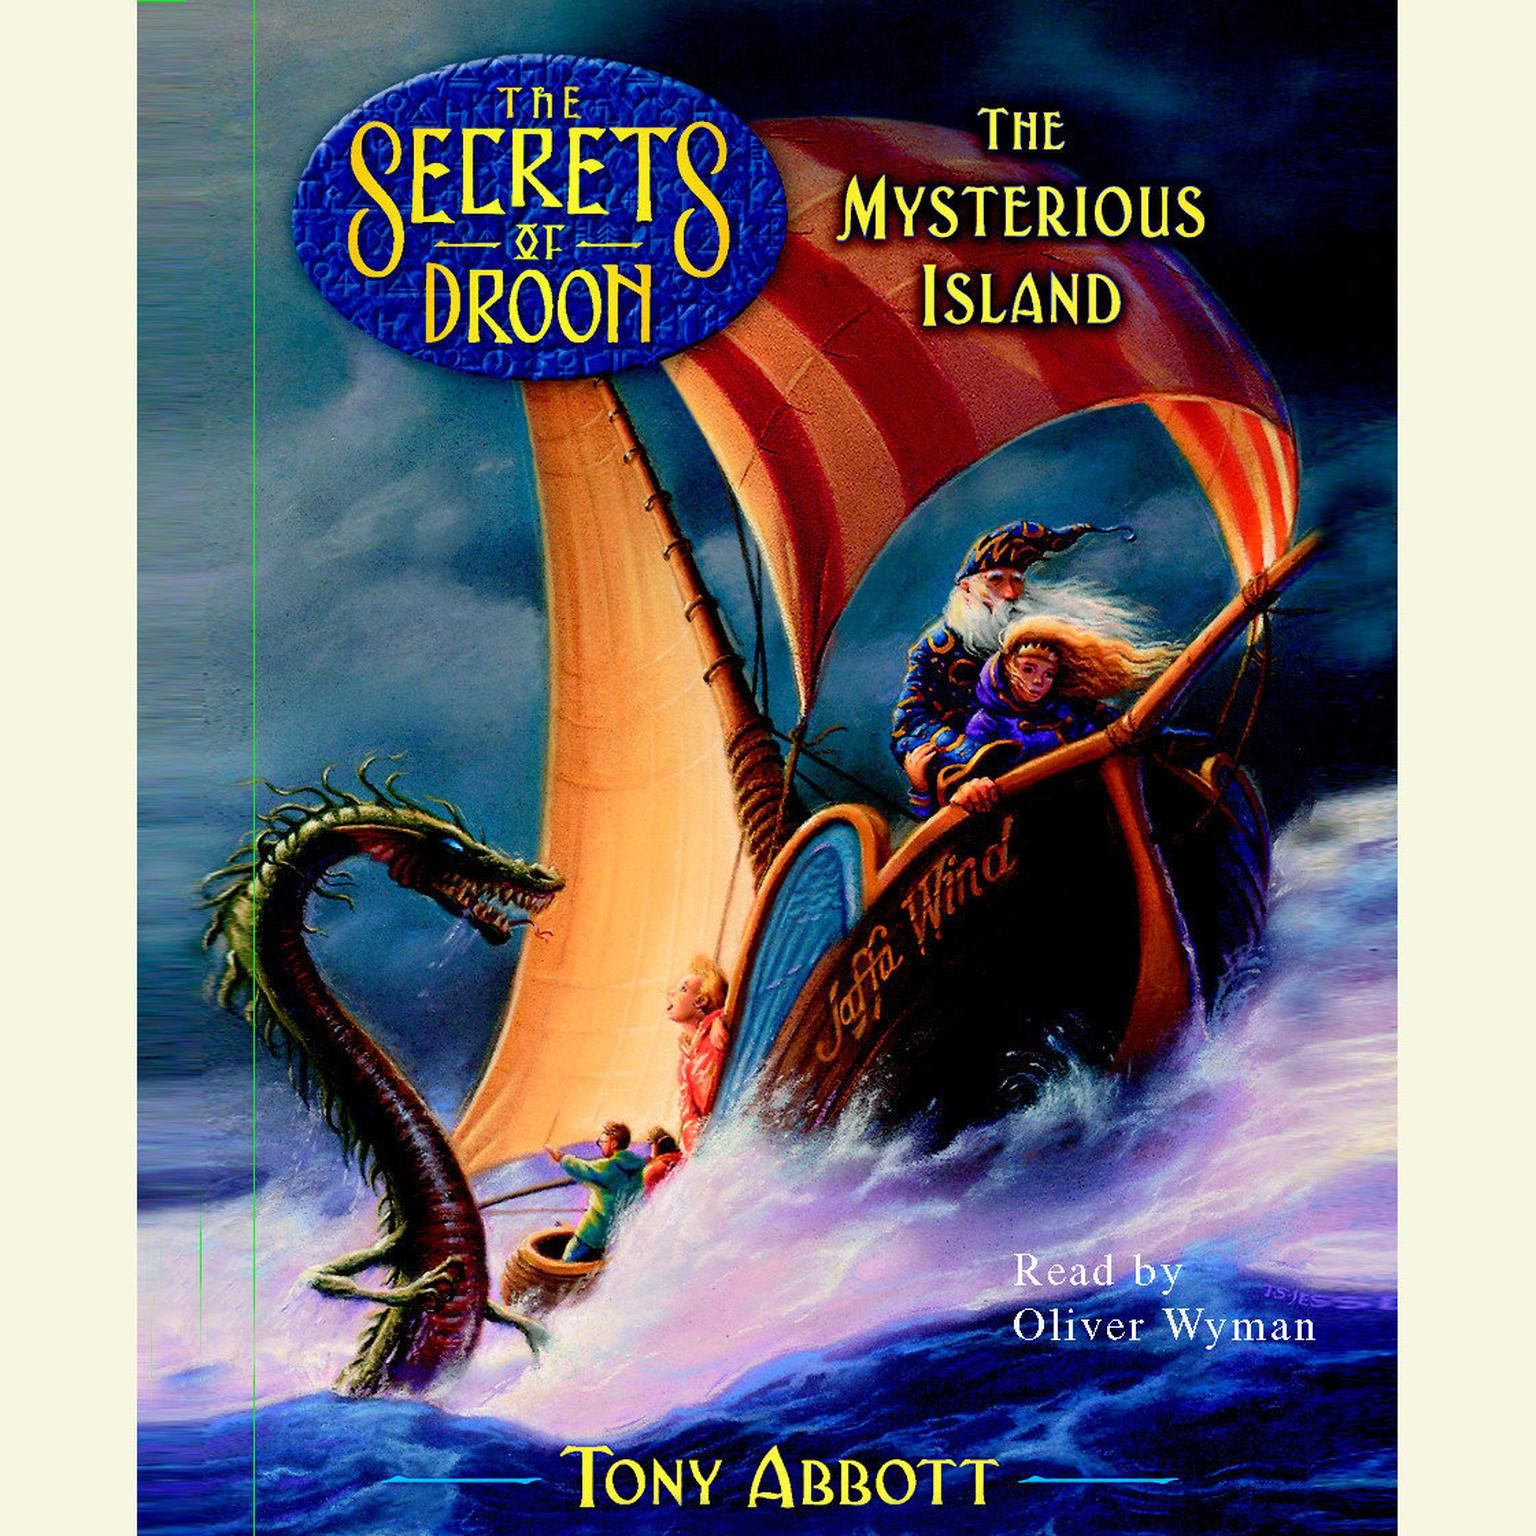 Printable The Mysterious Island, The Secrets of Droon Book 3 Audiobook Cover Art